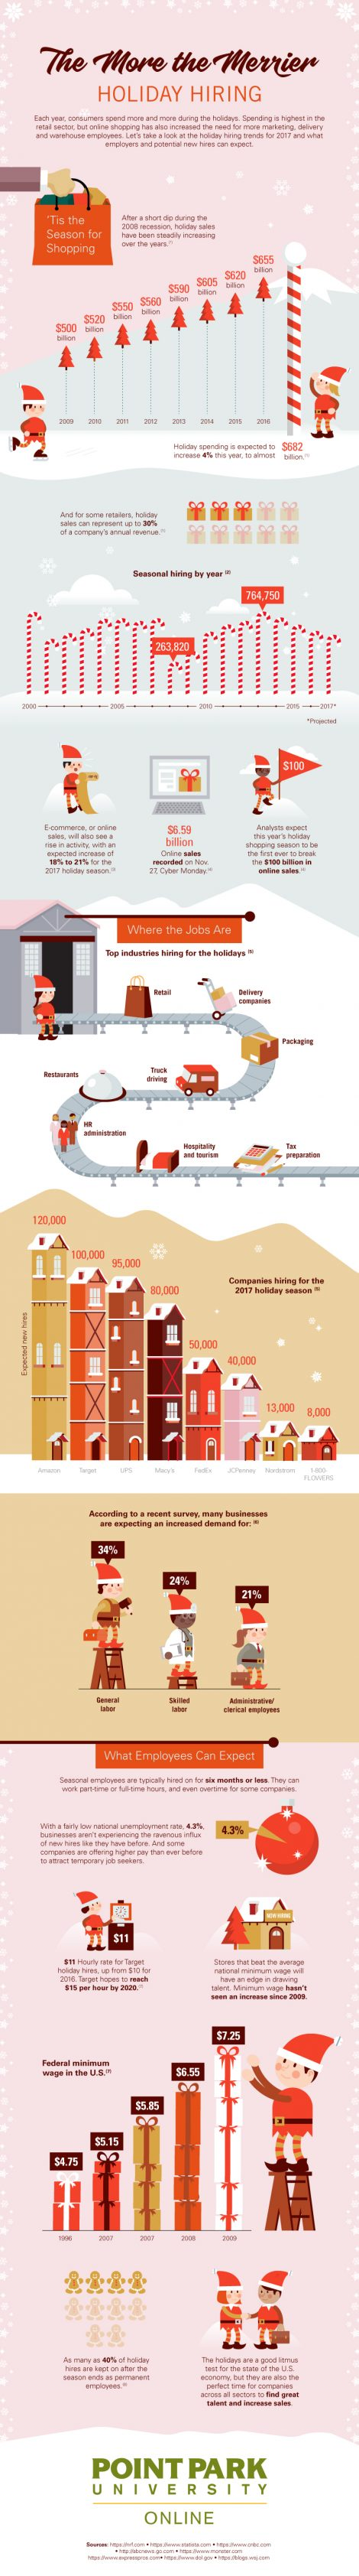 The More The Merrier: Holiday Hiring infographic